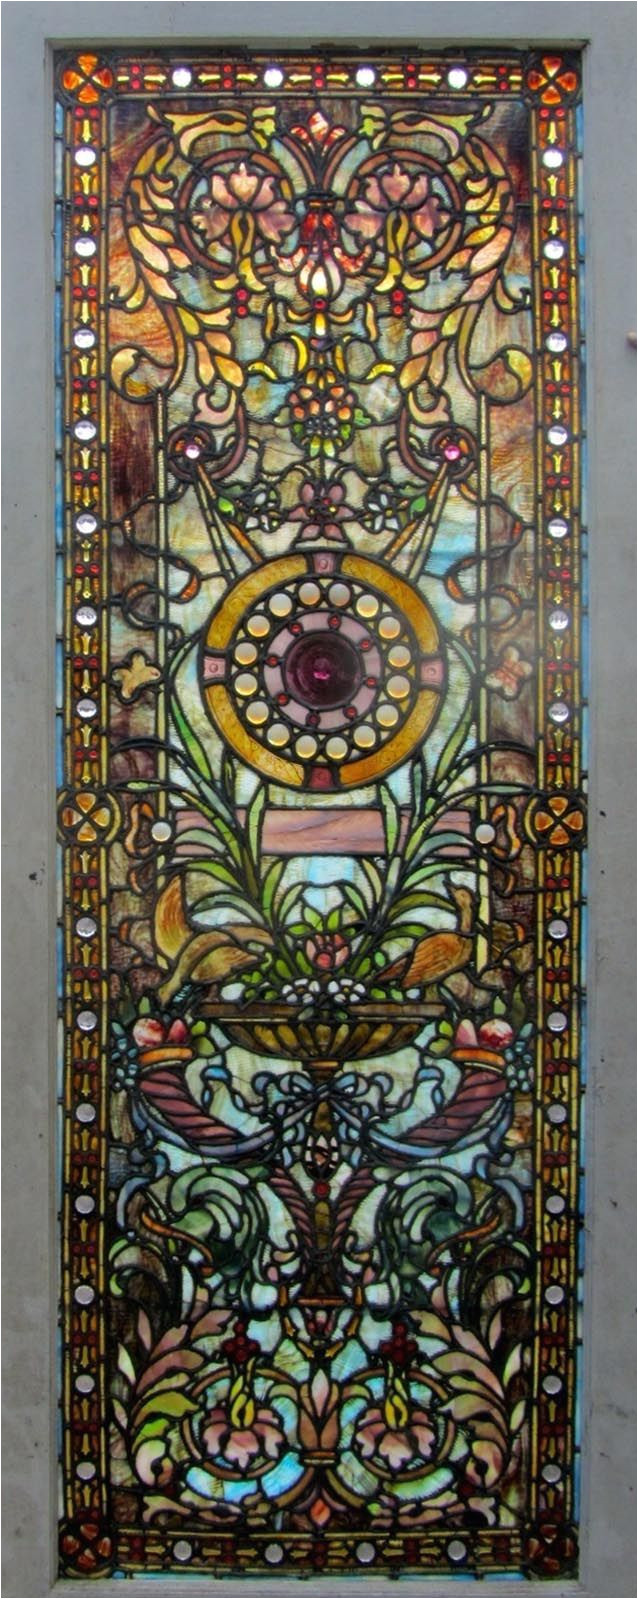 antique american stained glass door attributed to the ruby brothers studios ca 1900